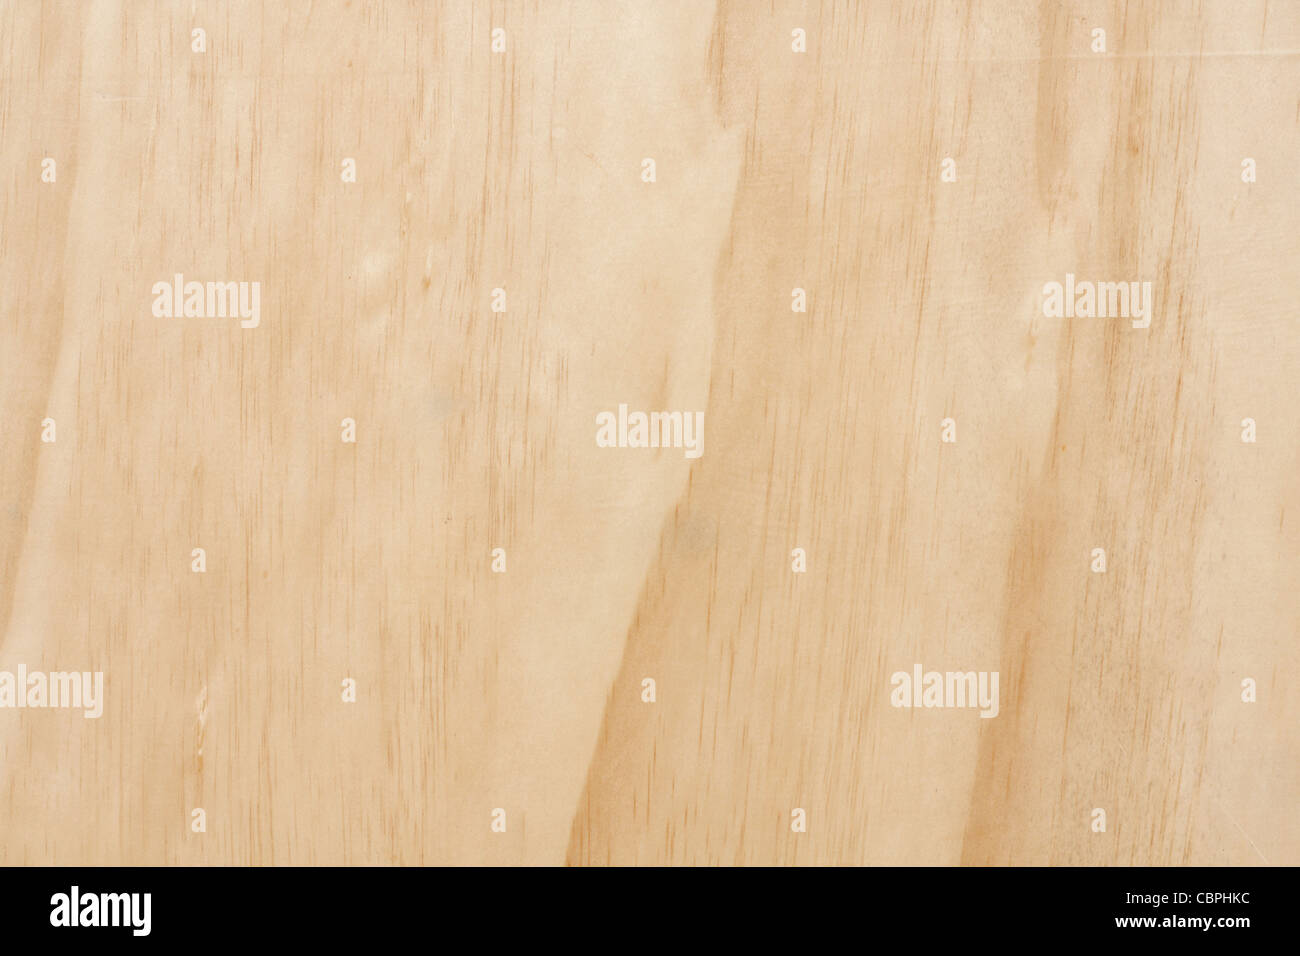 Wooden background - Stock Image